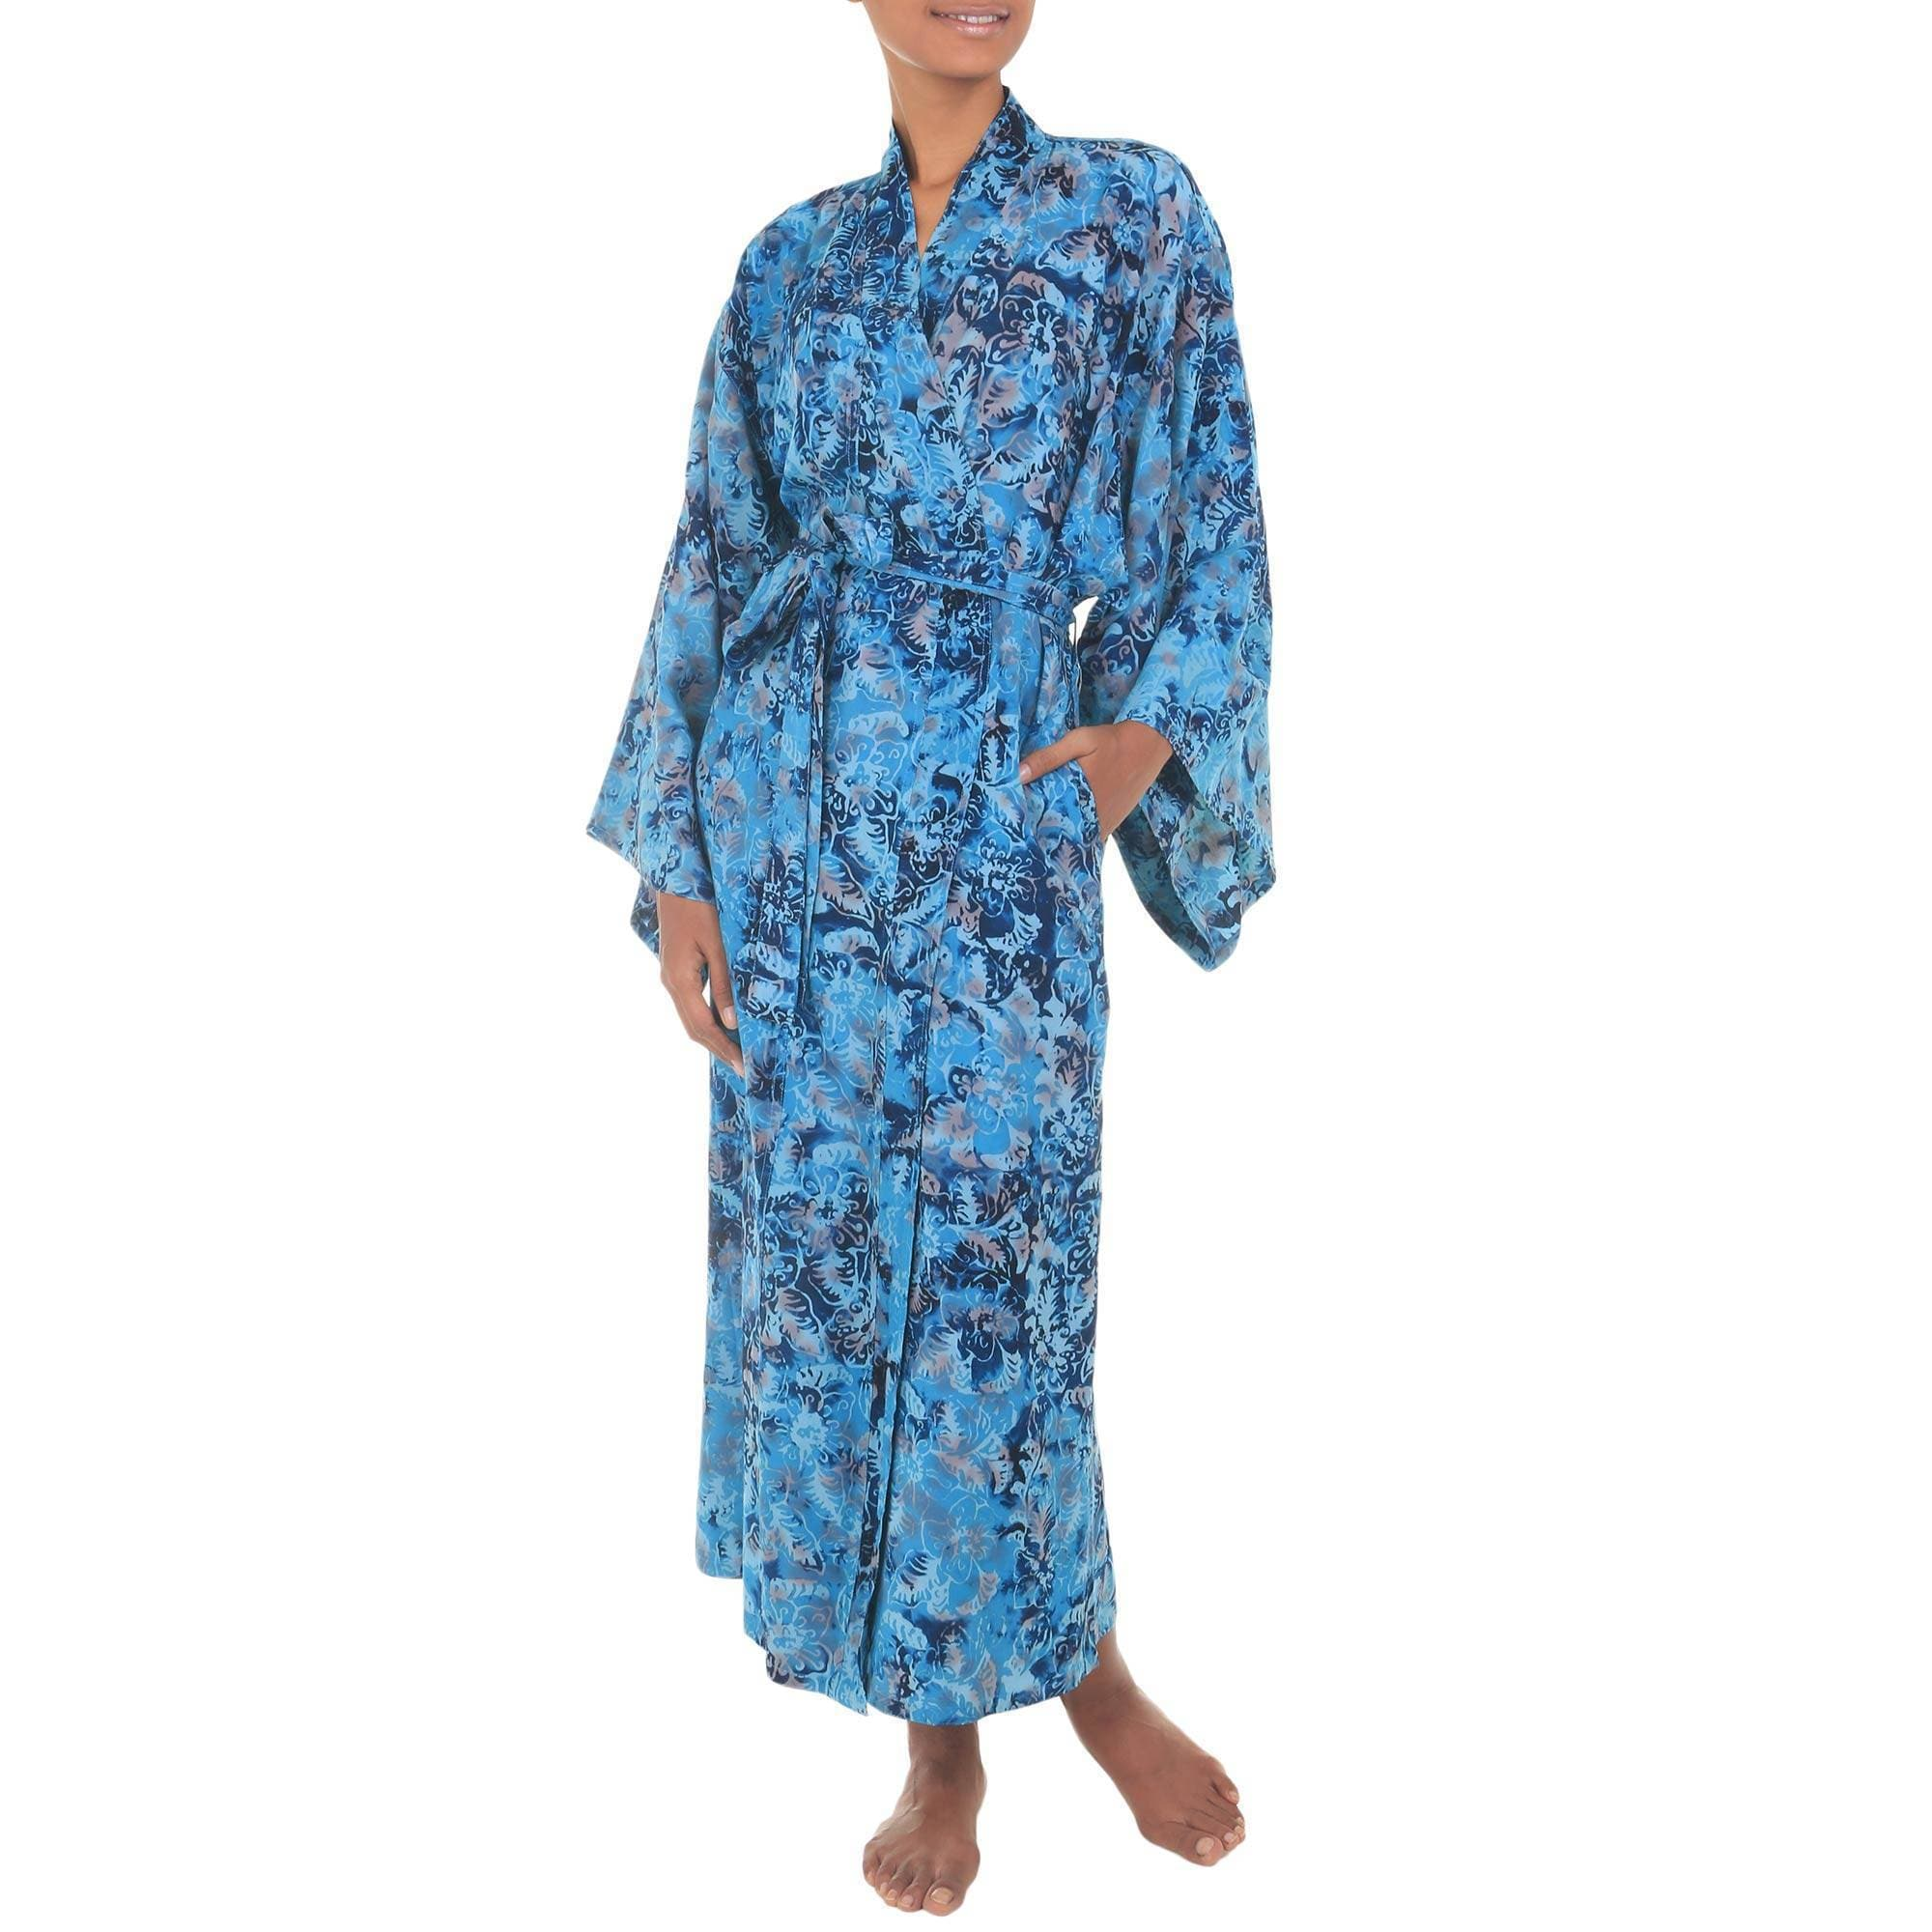 b28482c93a9 Novica Women's Clothing | Shop our Best Clothing & Shoes Deals Online at  Overstock